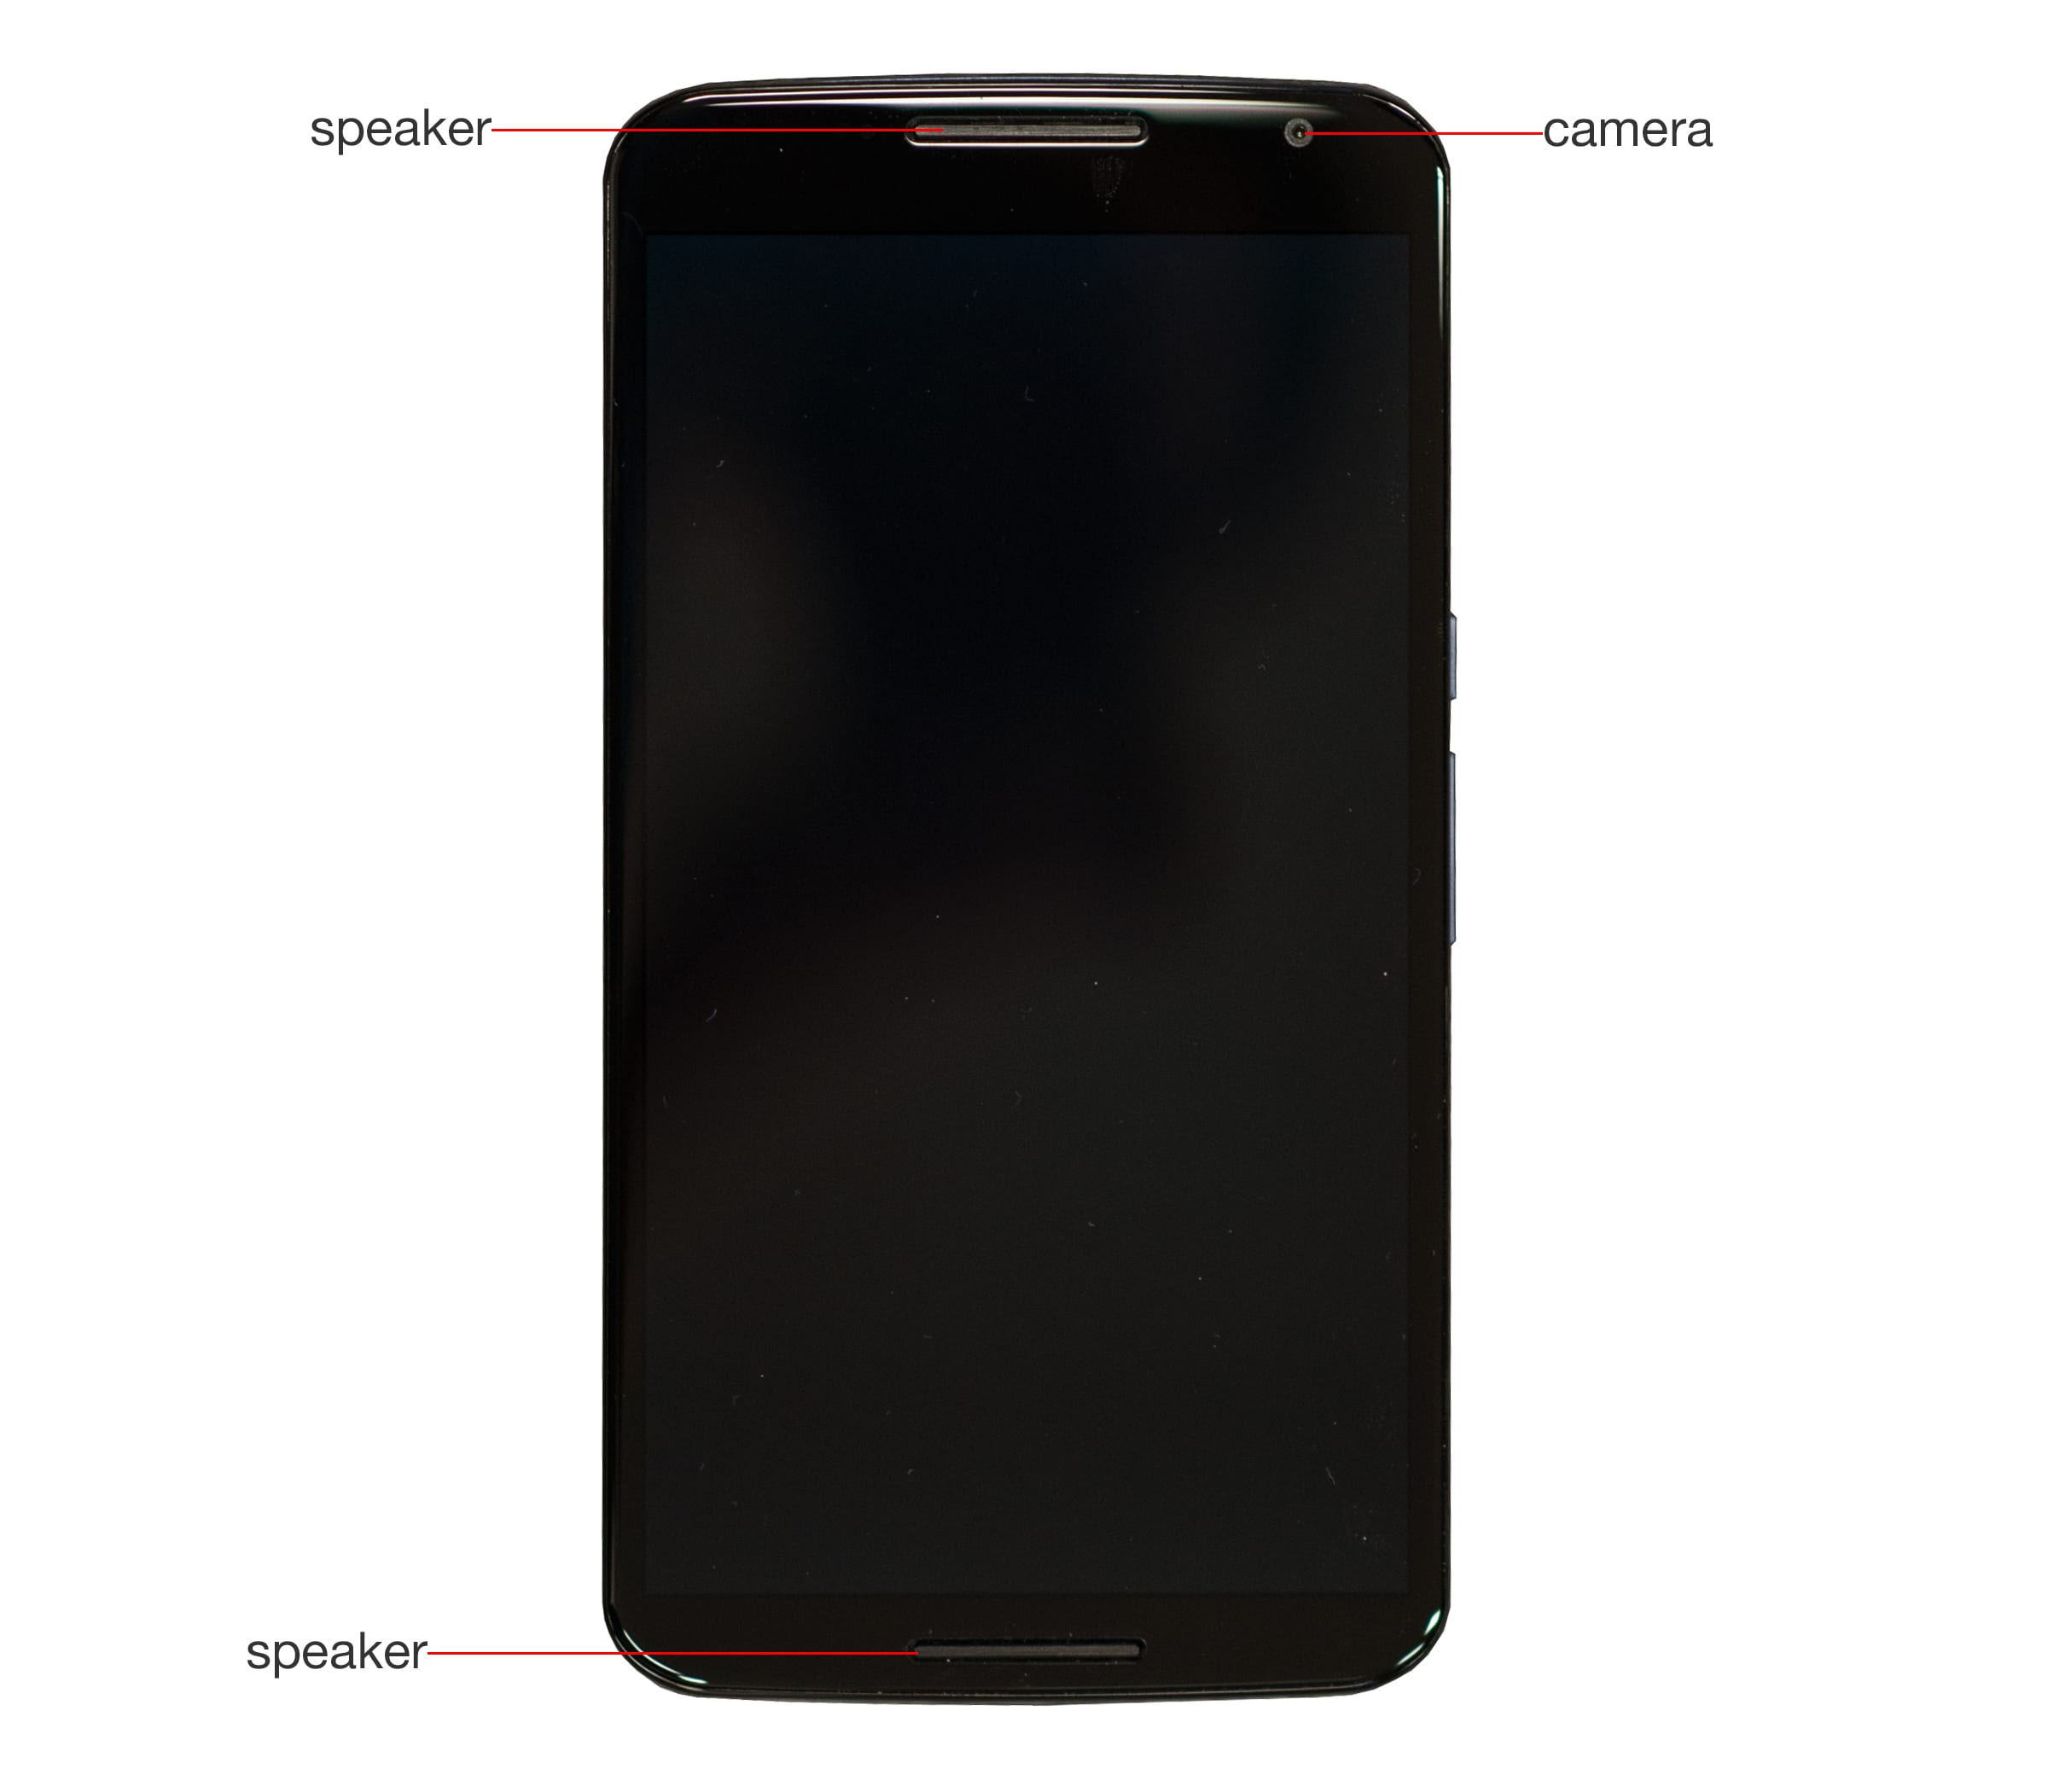 A callout image of the Google Nexus 6's front.